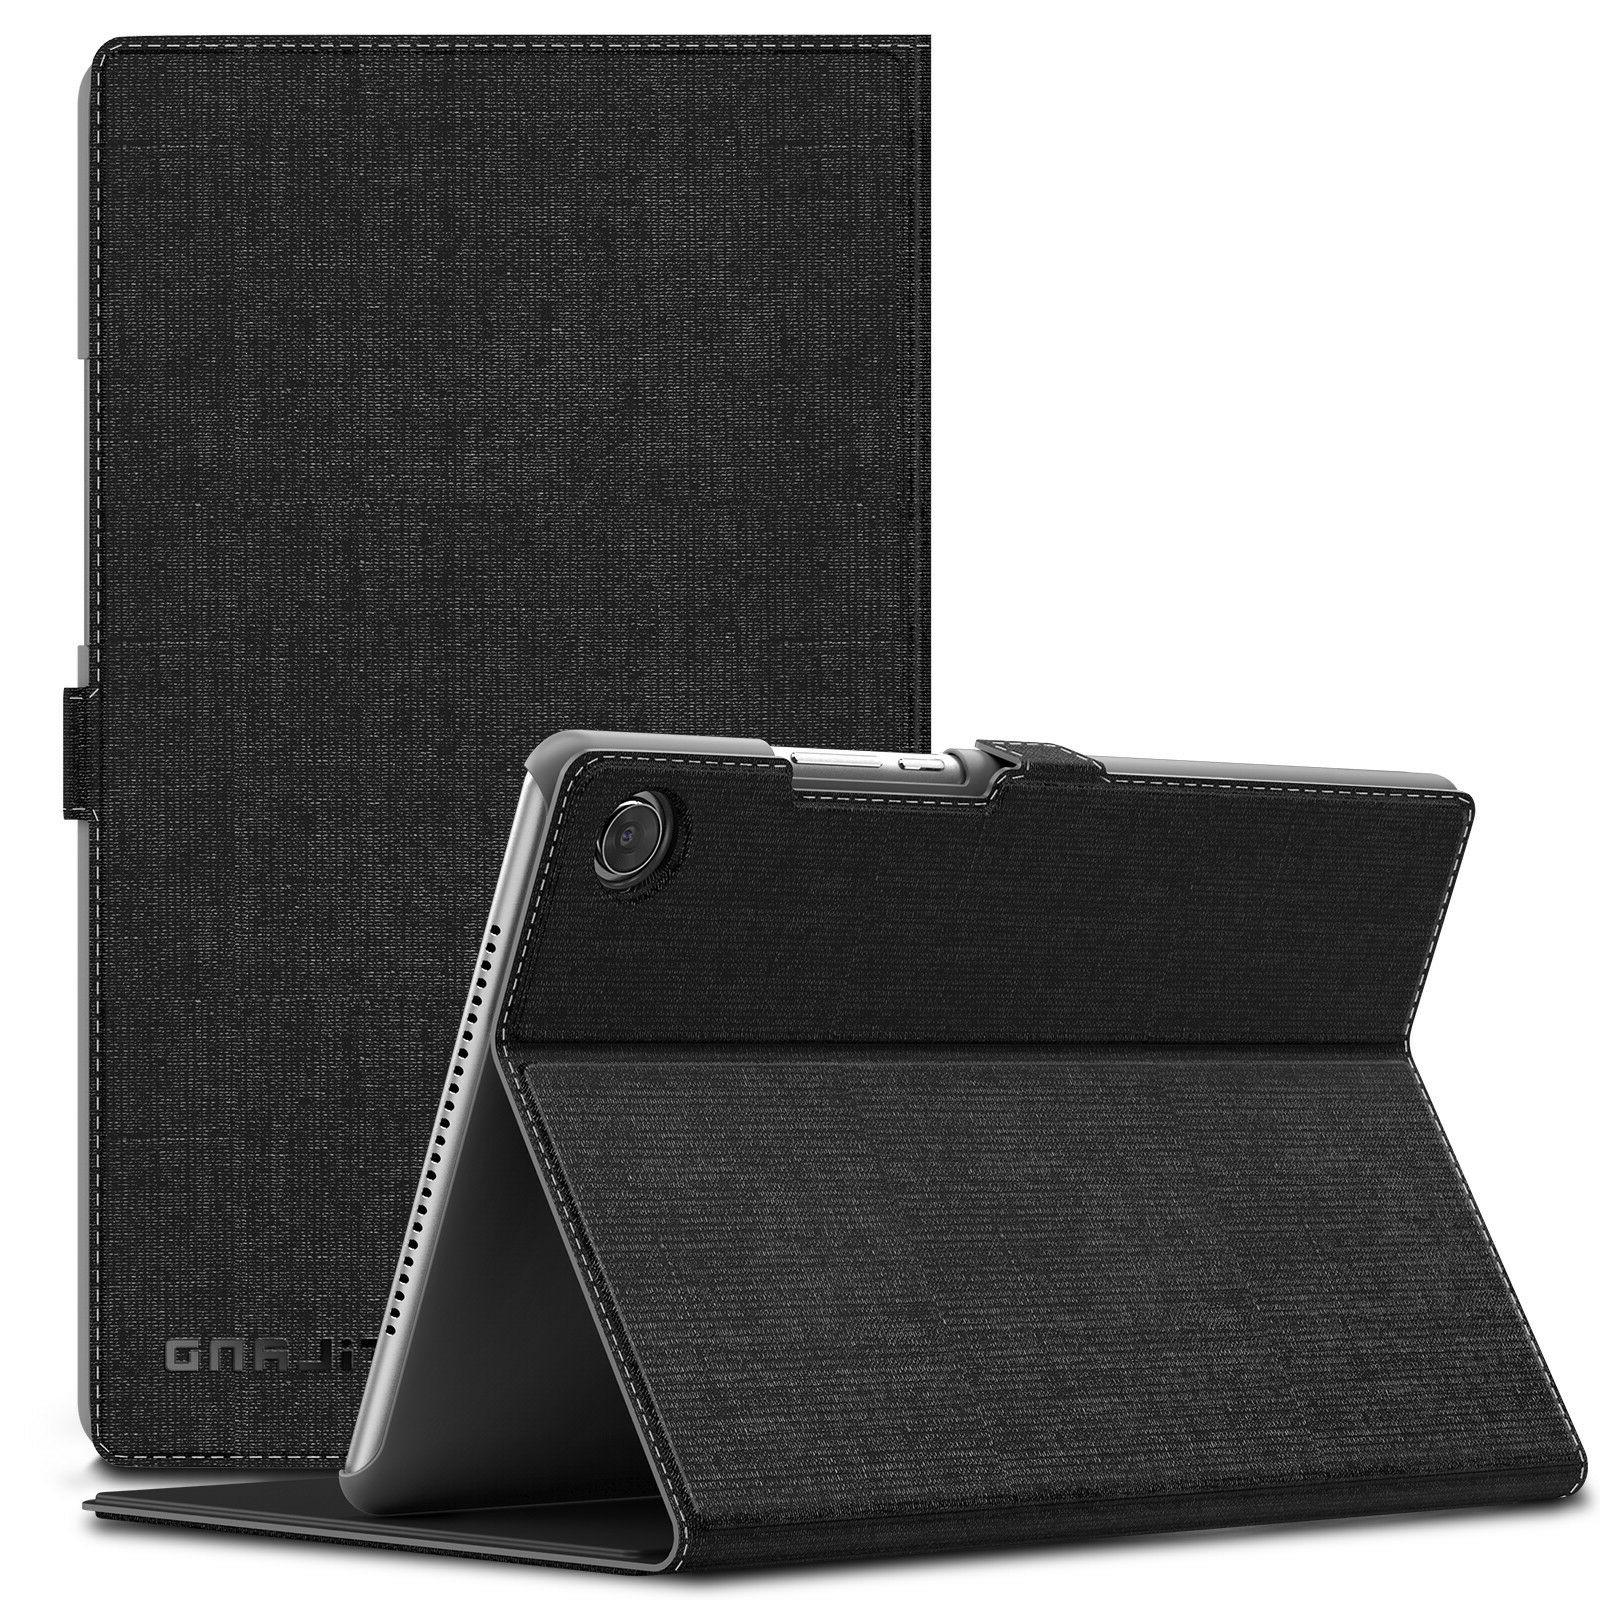 Infiland Multi-Angle Folio Stand Case Cover for Huawei Media